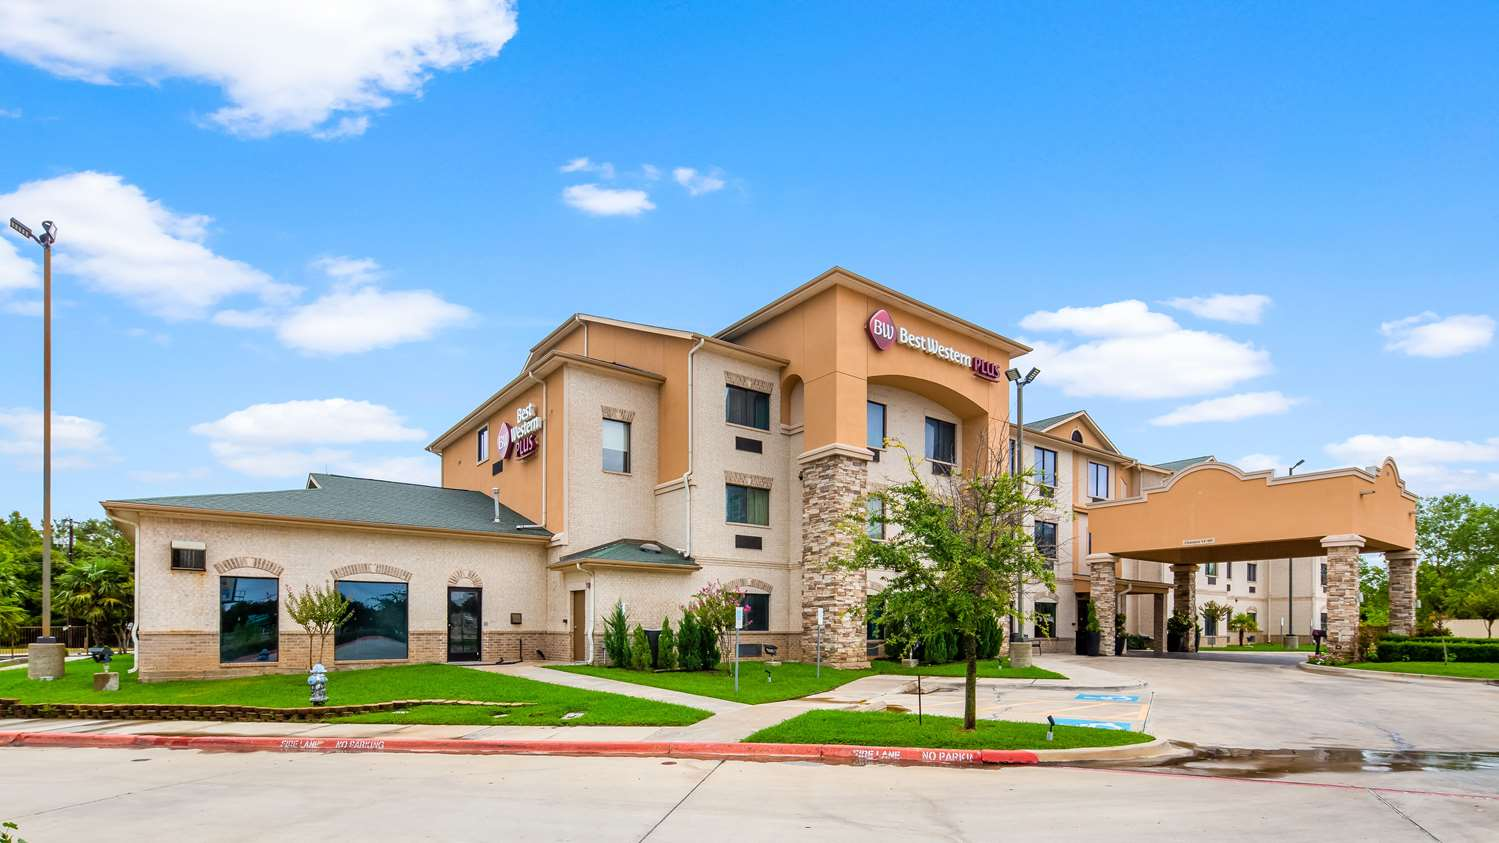 Cheap Motels In Burleson Tx